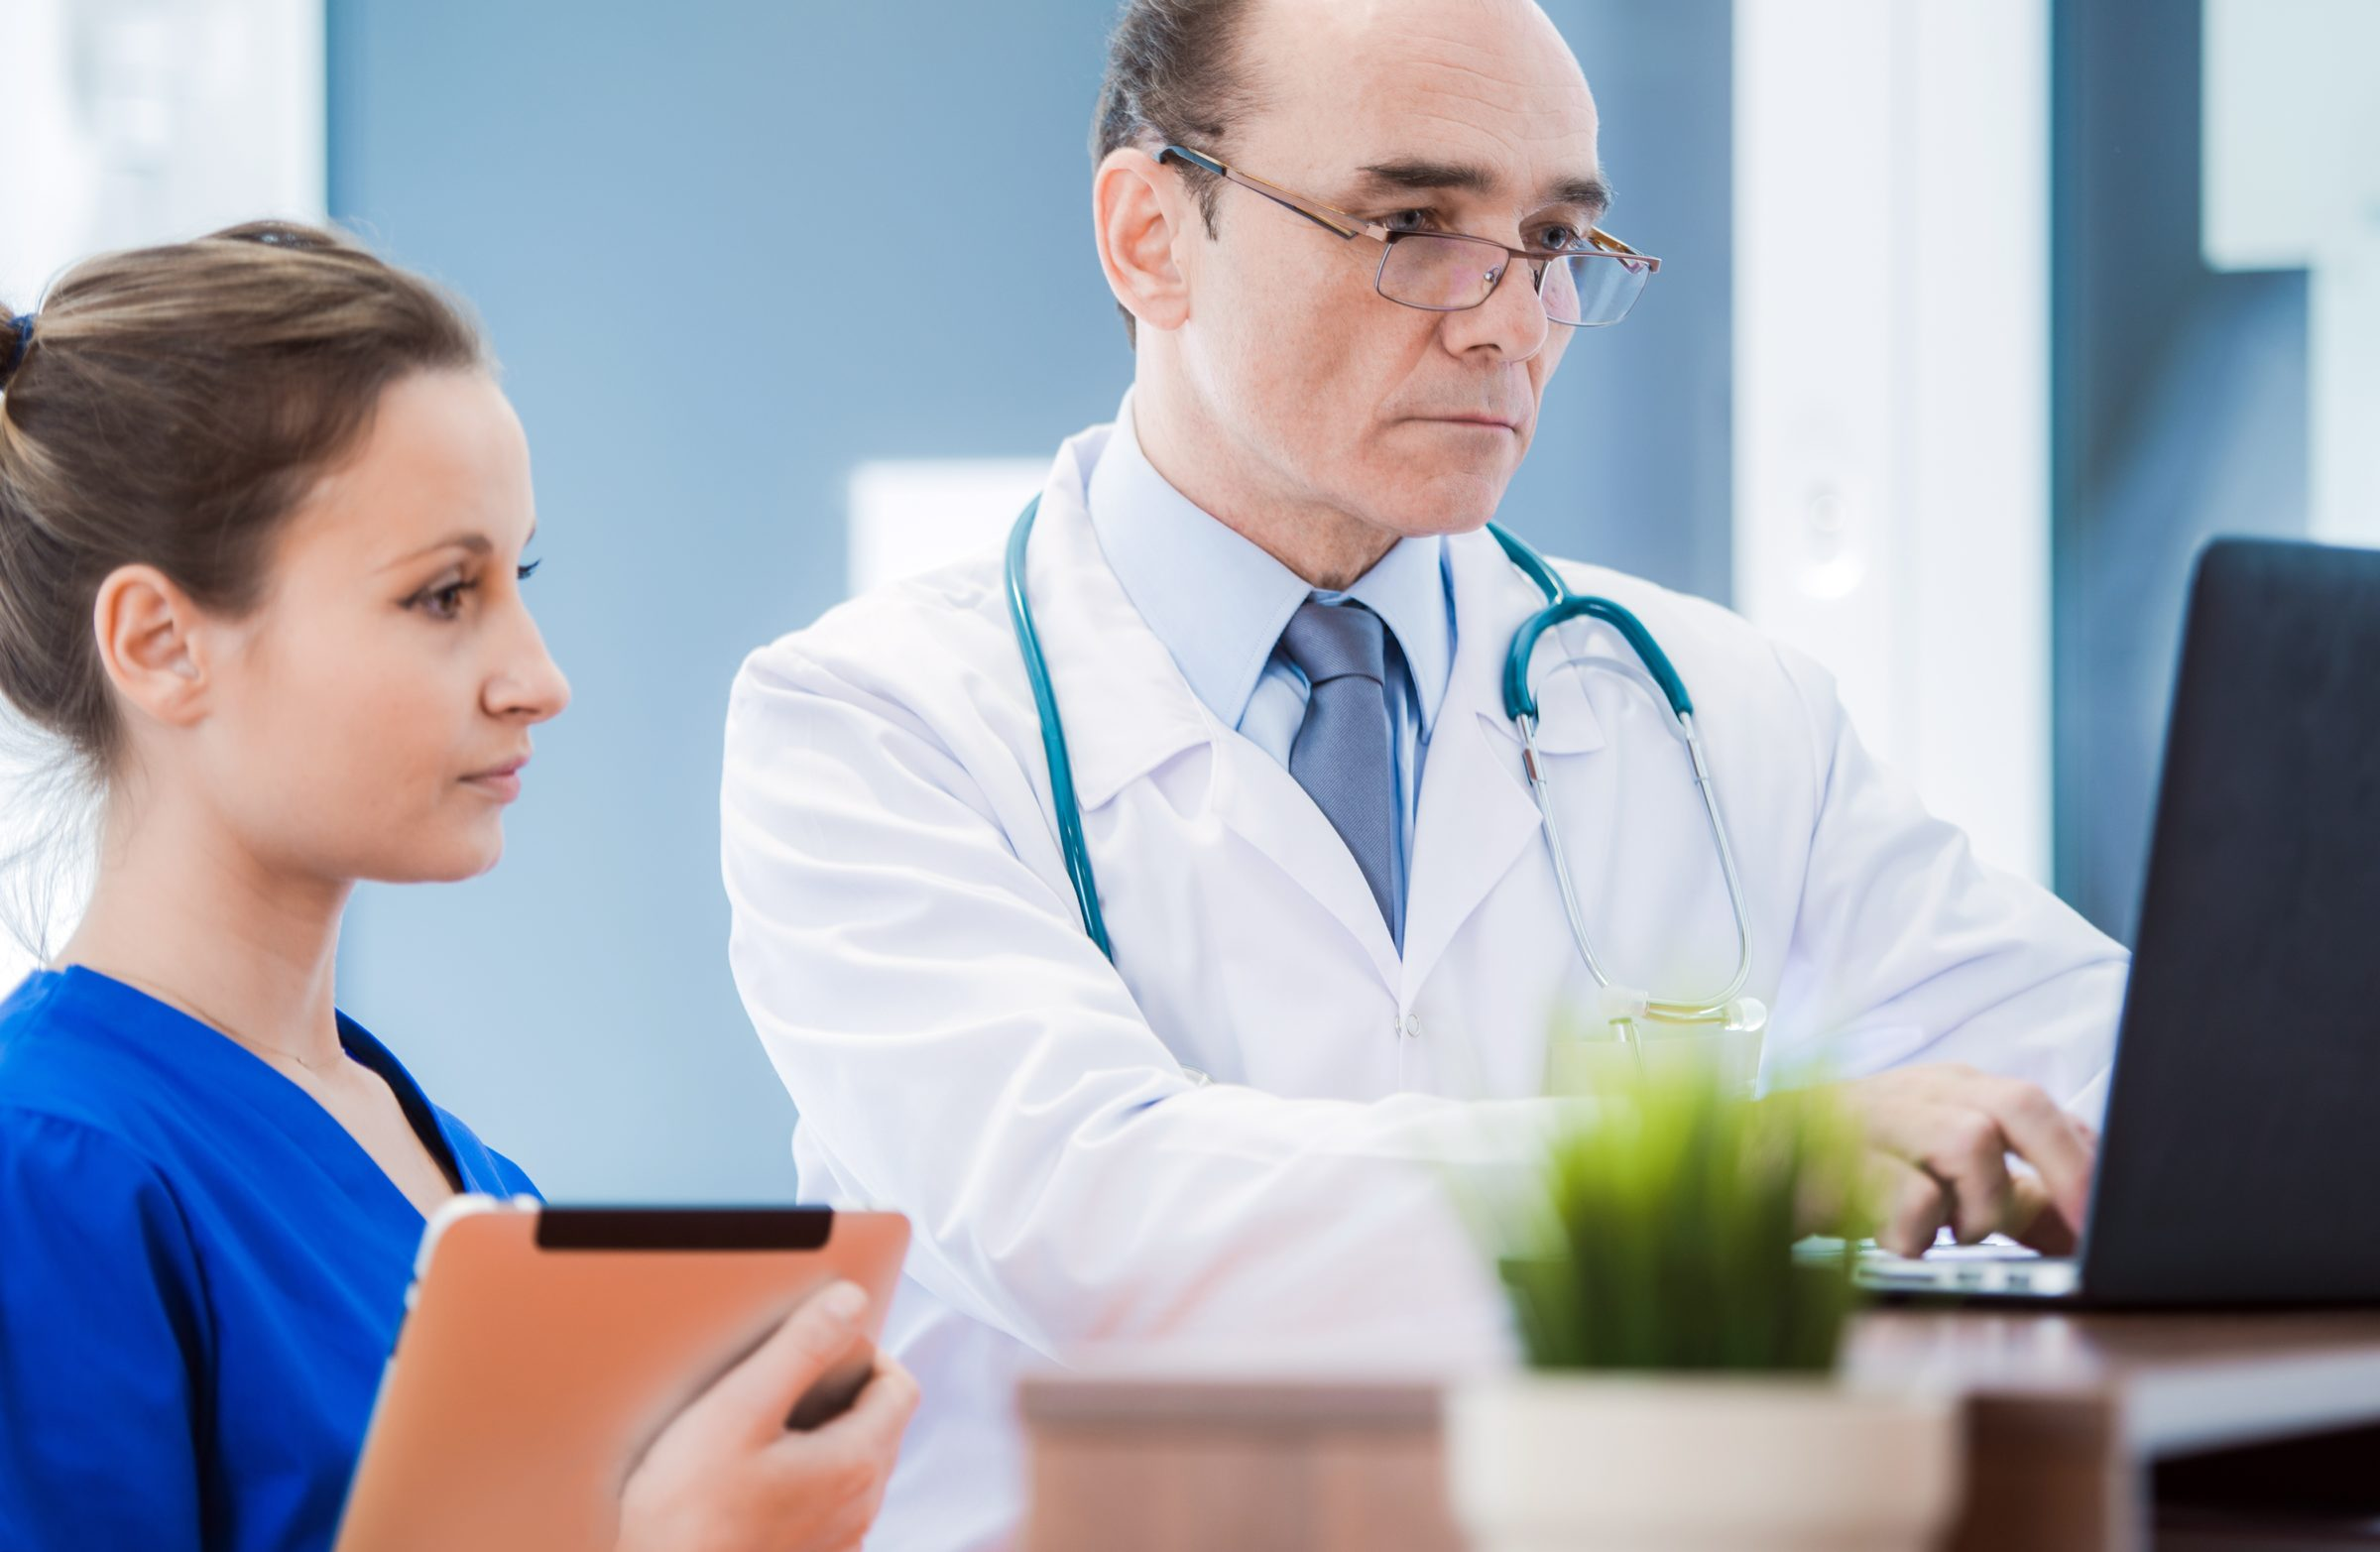 medical doctor with laptop PQKC43N